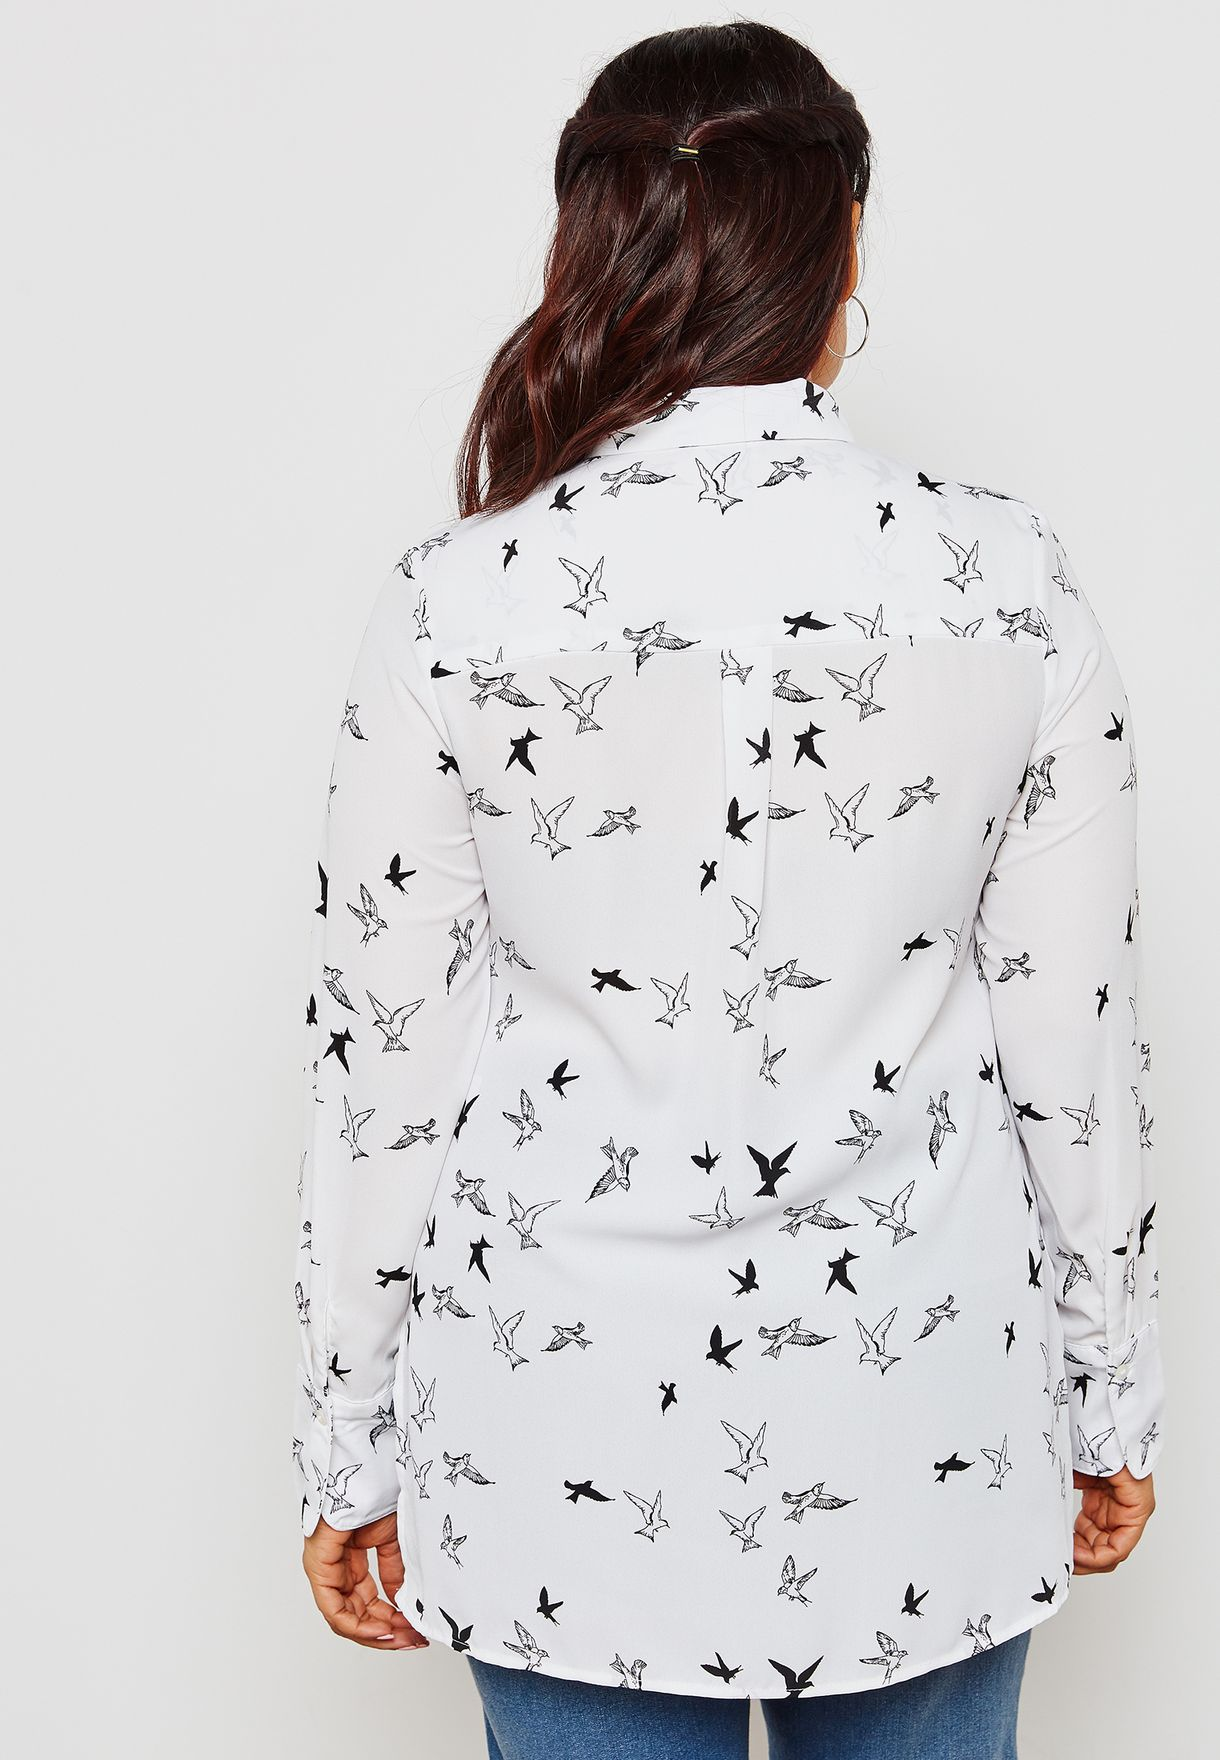 Bird Printed Shirt